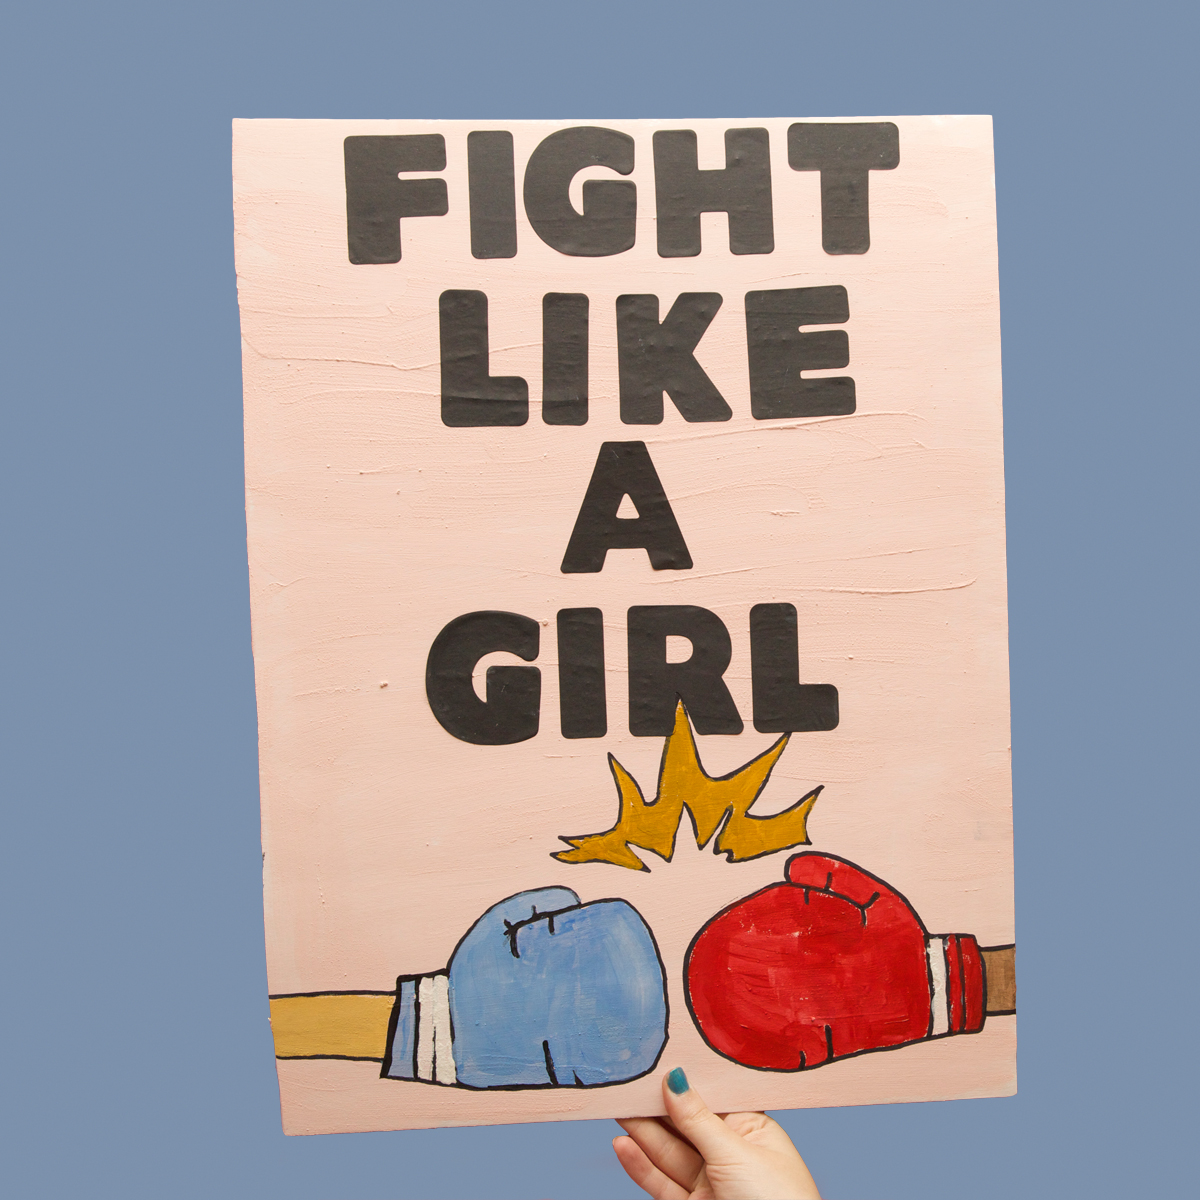 45 Protest Signs_Brandon and Olivia Locher_35_Fight Like A Girl